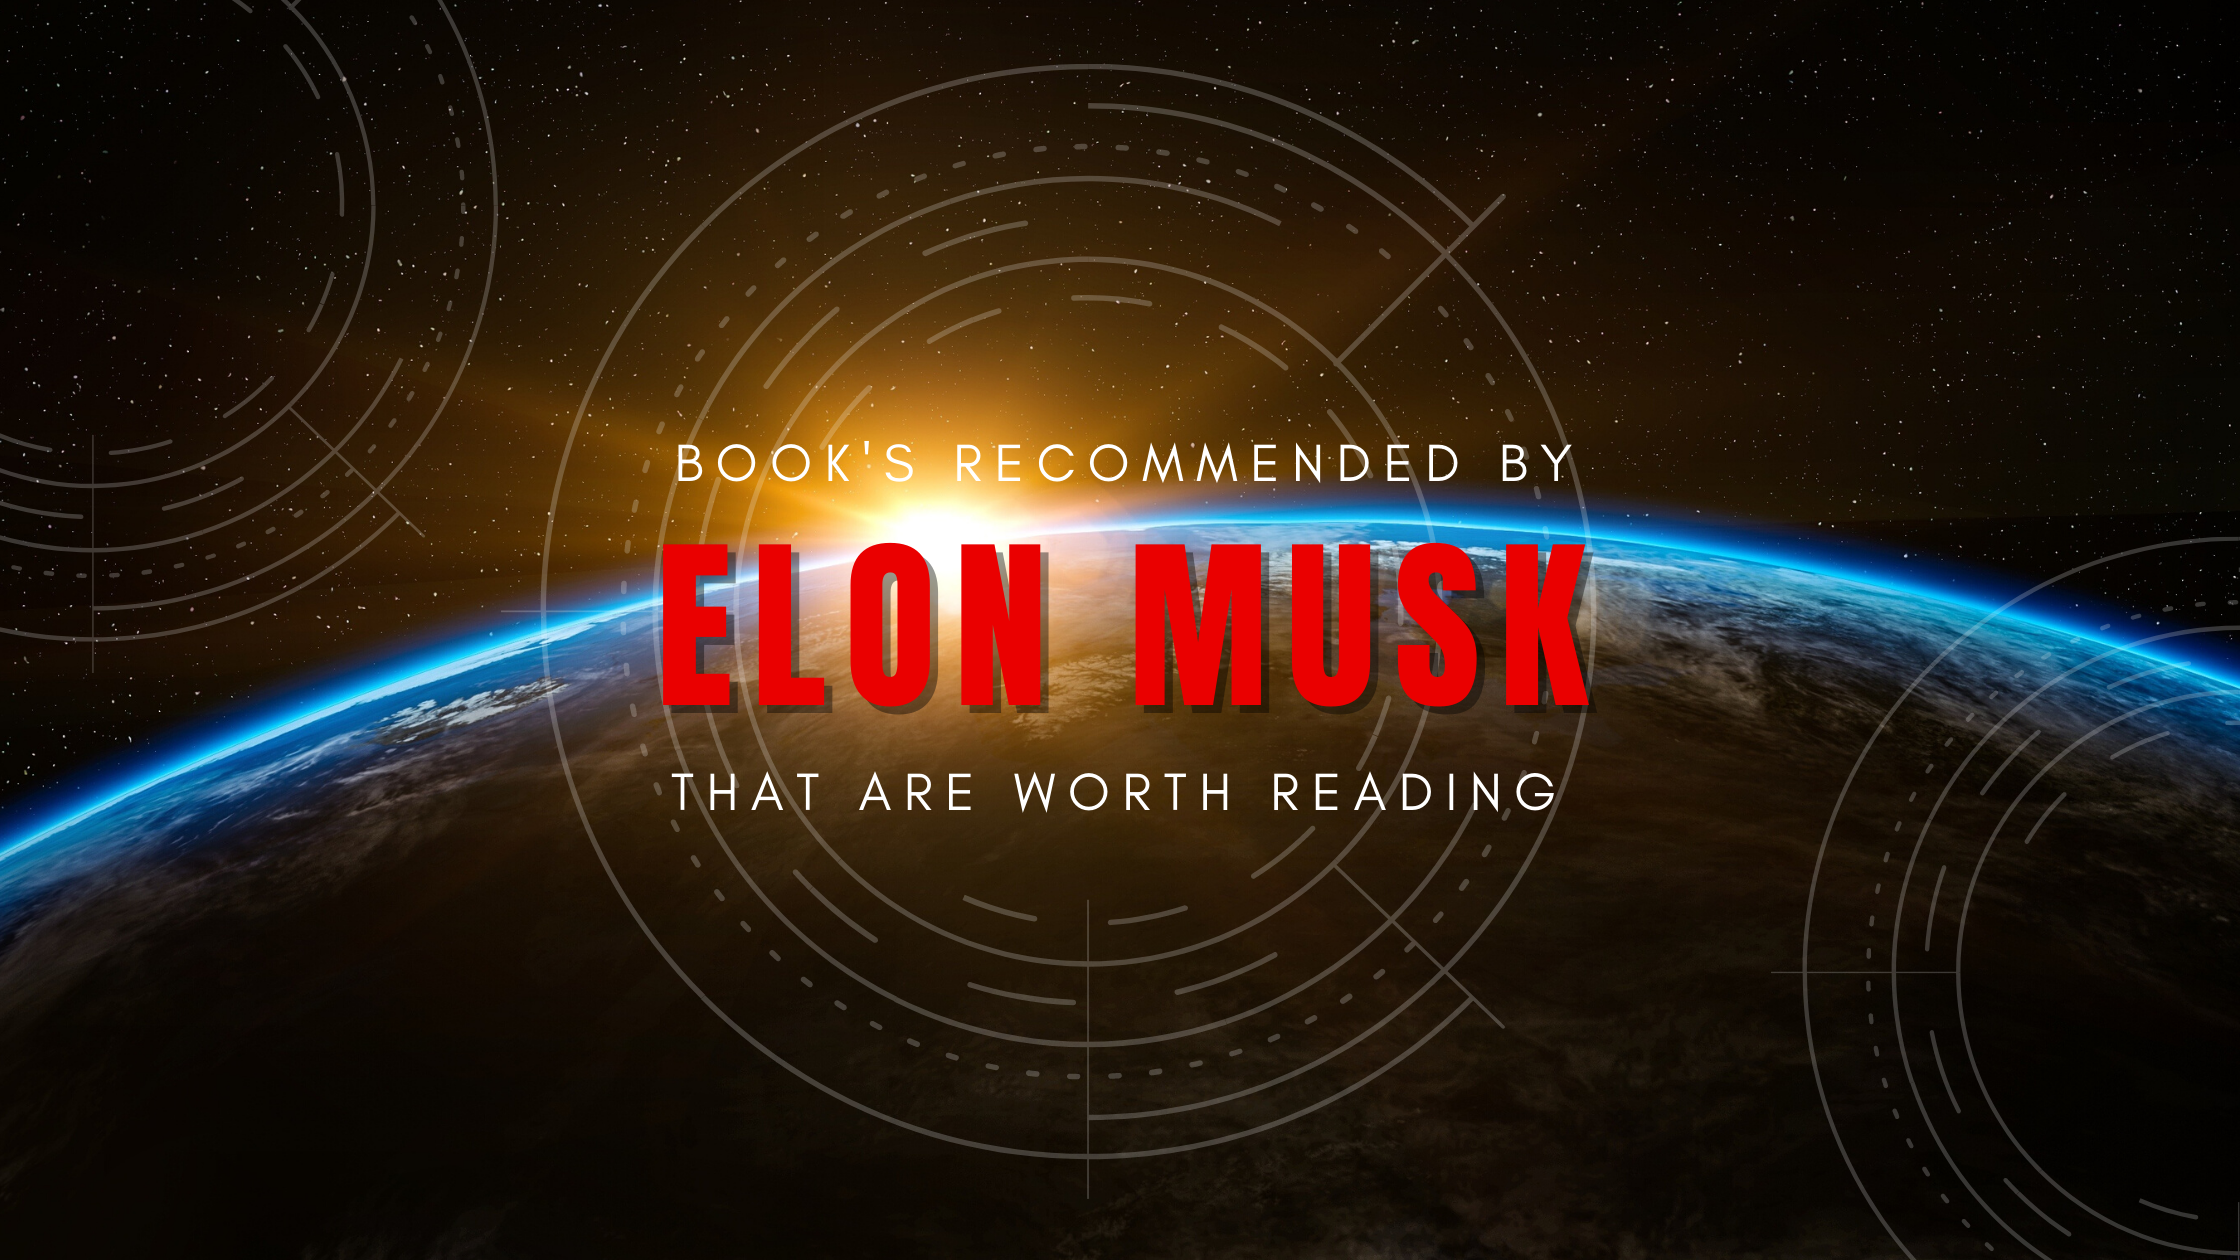 Books Recommended by Elon Musk That Are Worth Reading